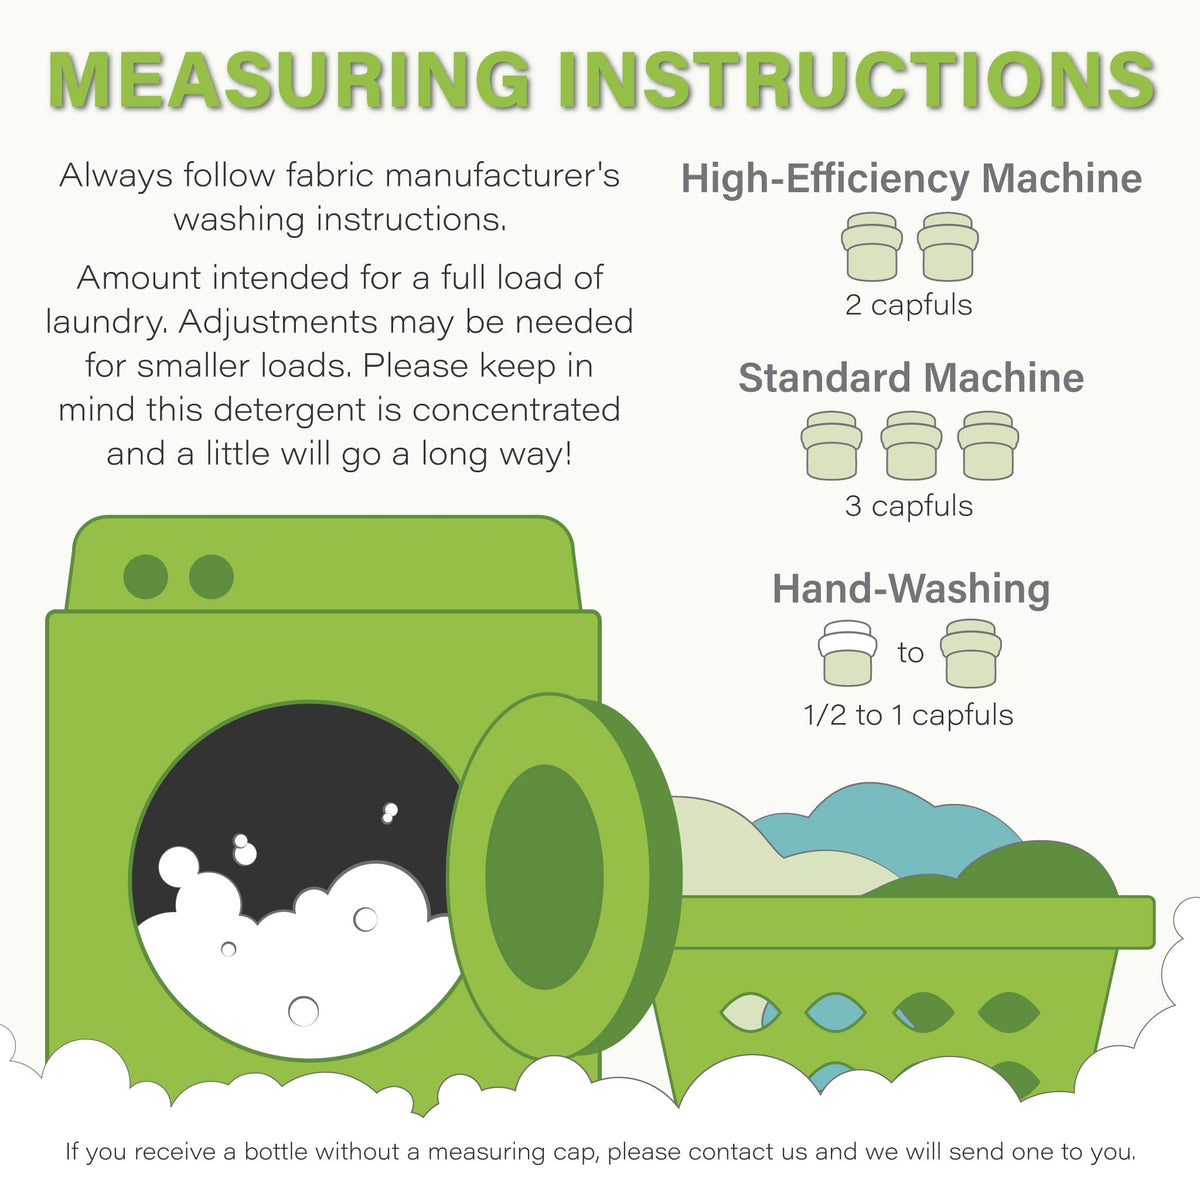 Follow These Washing Instructions for the Perfect Wash Every Time